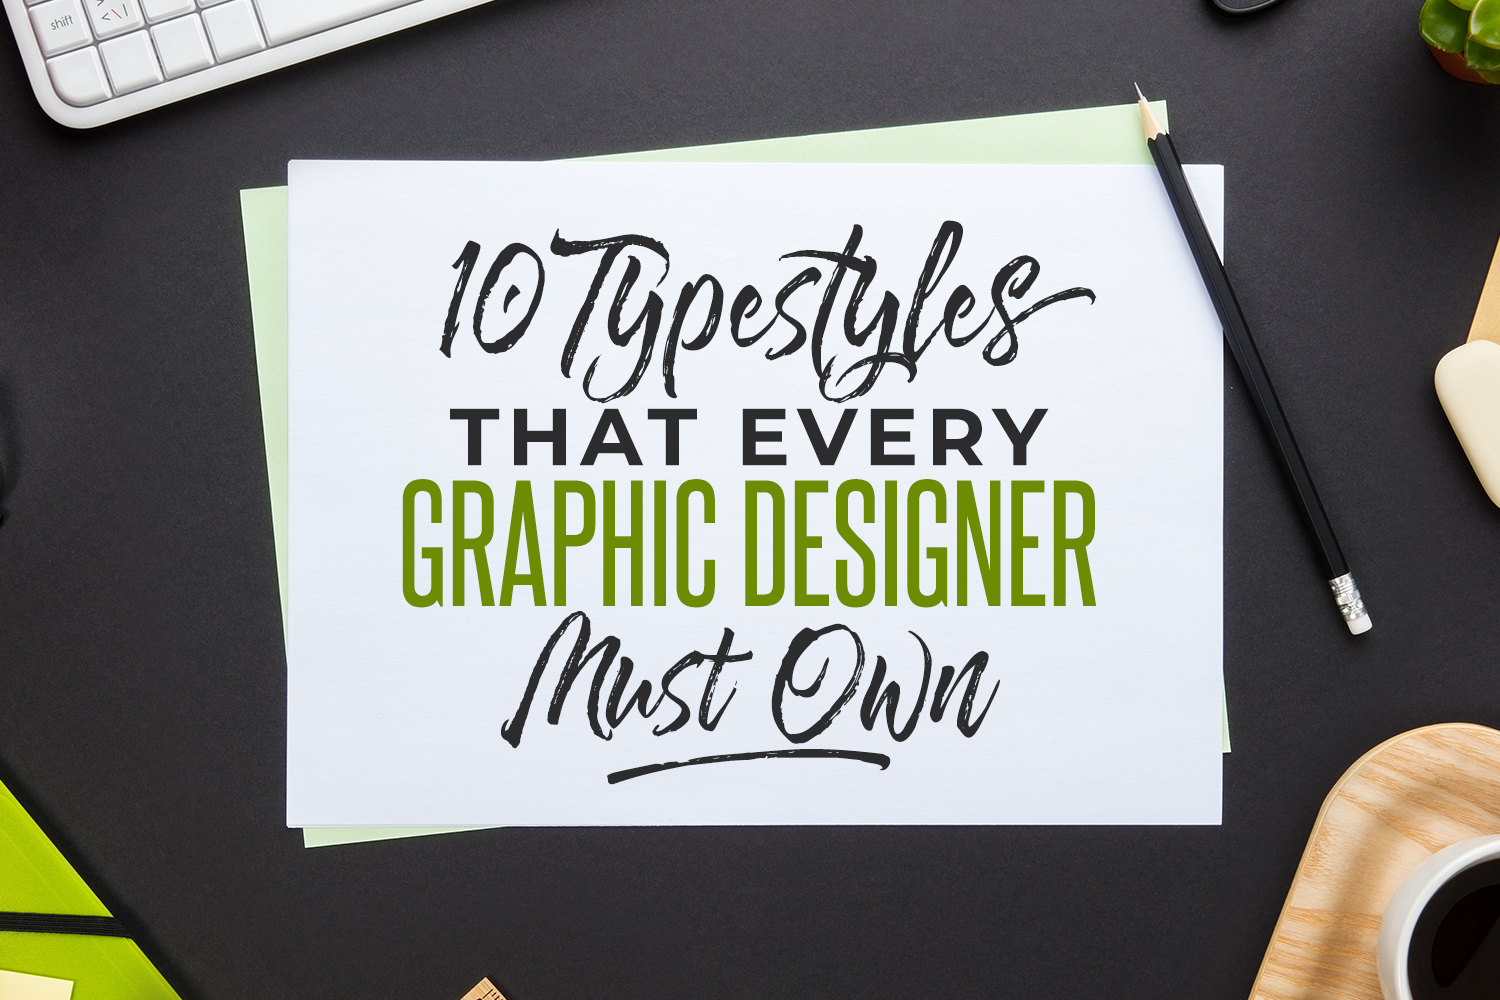 10 Typestyles That Every Graphic Designer Must Own